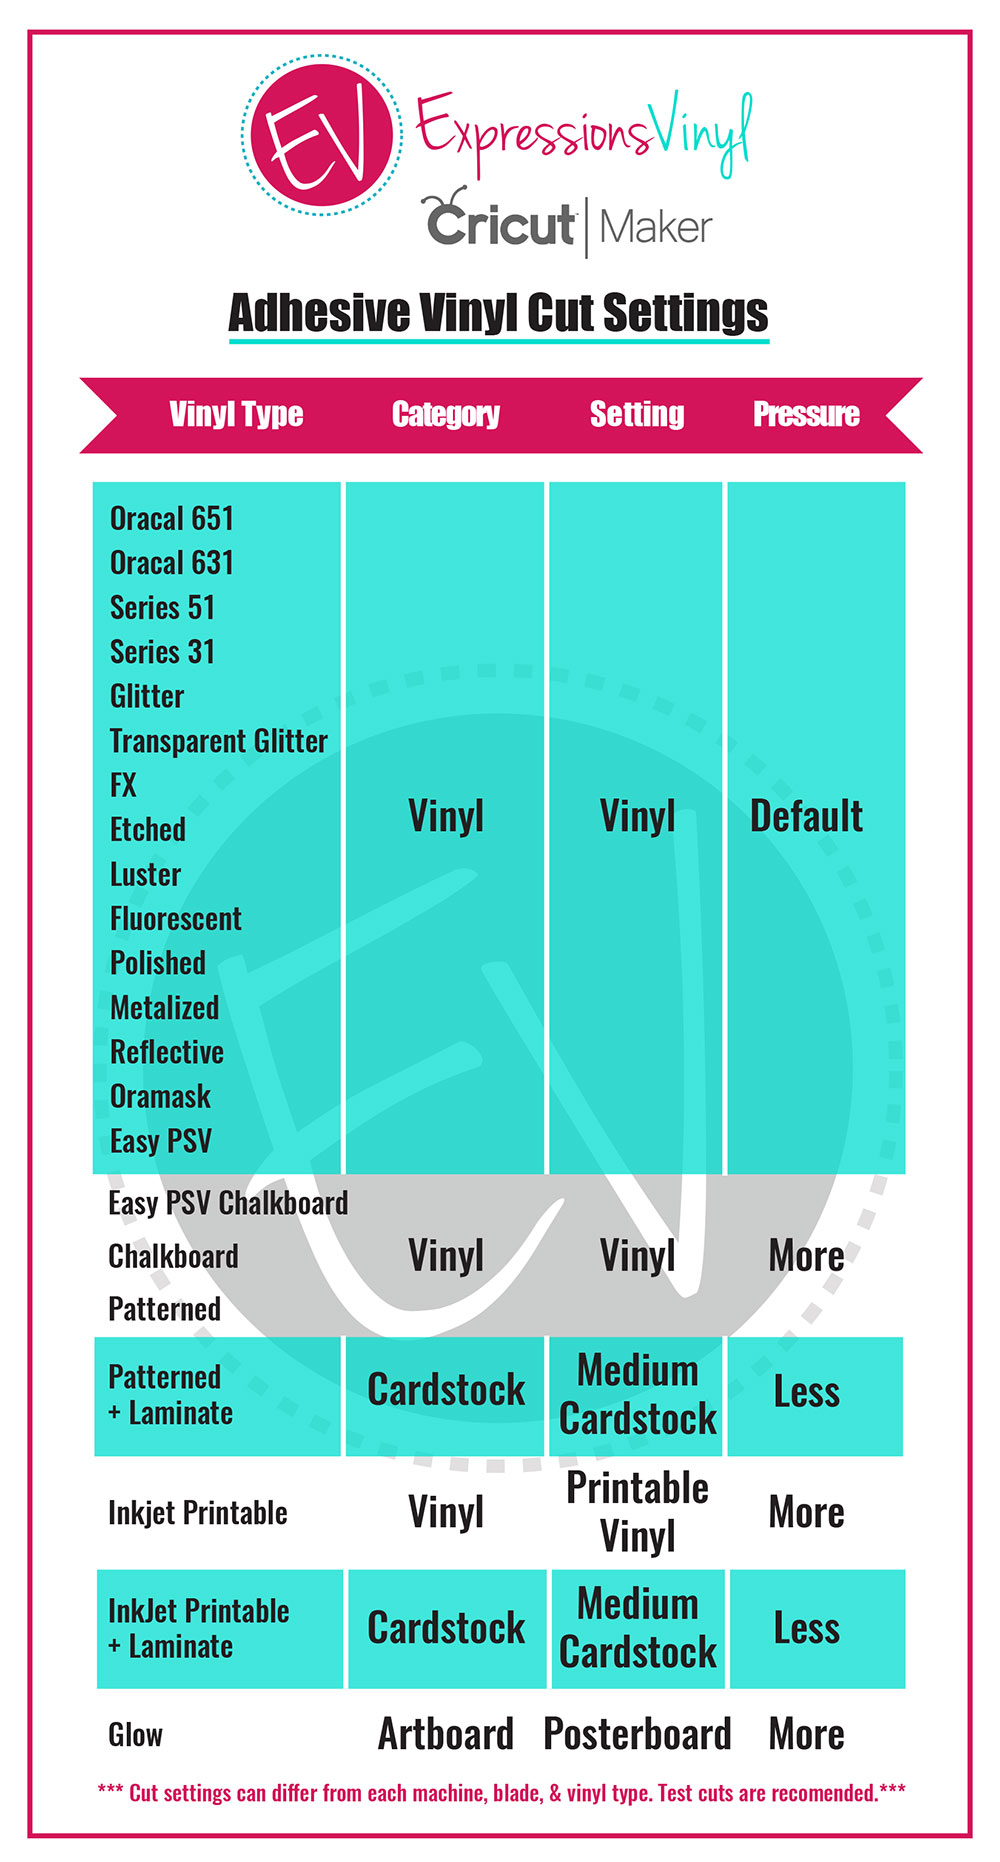 Cricut Maker Adhesive Vinyl Cut Settings